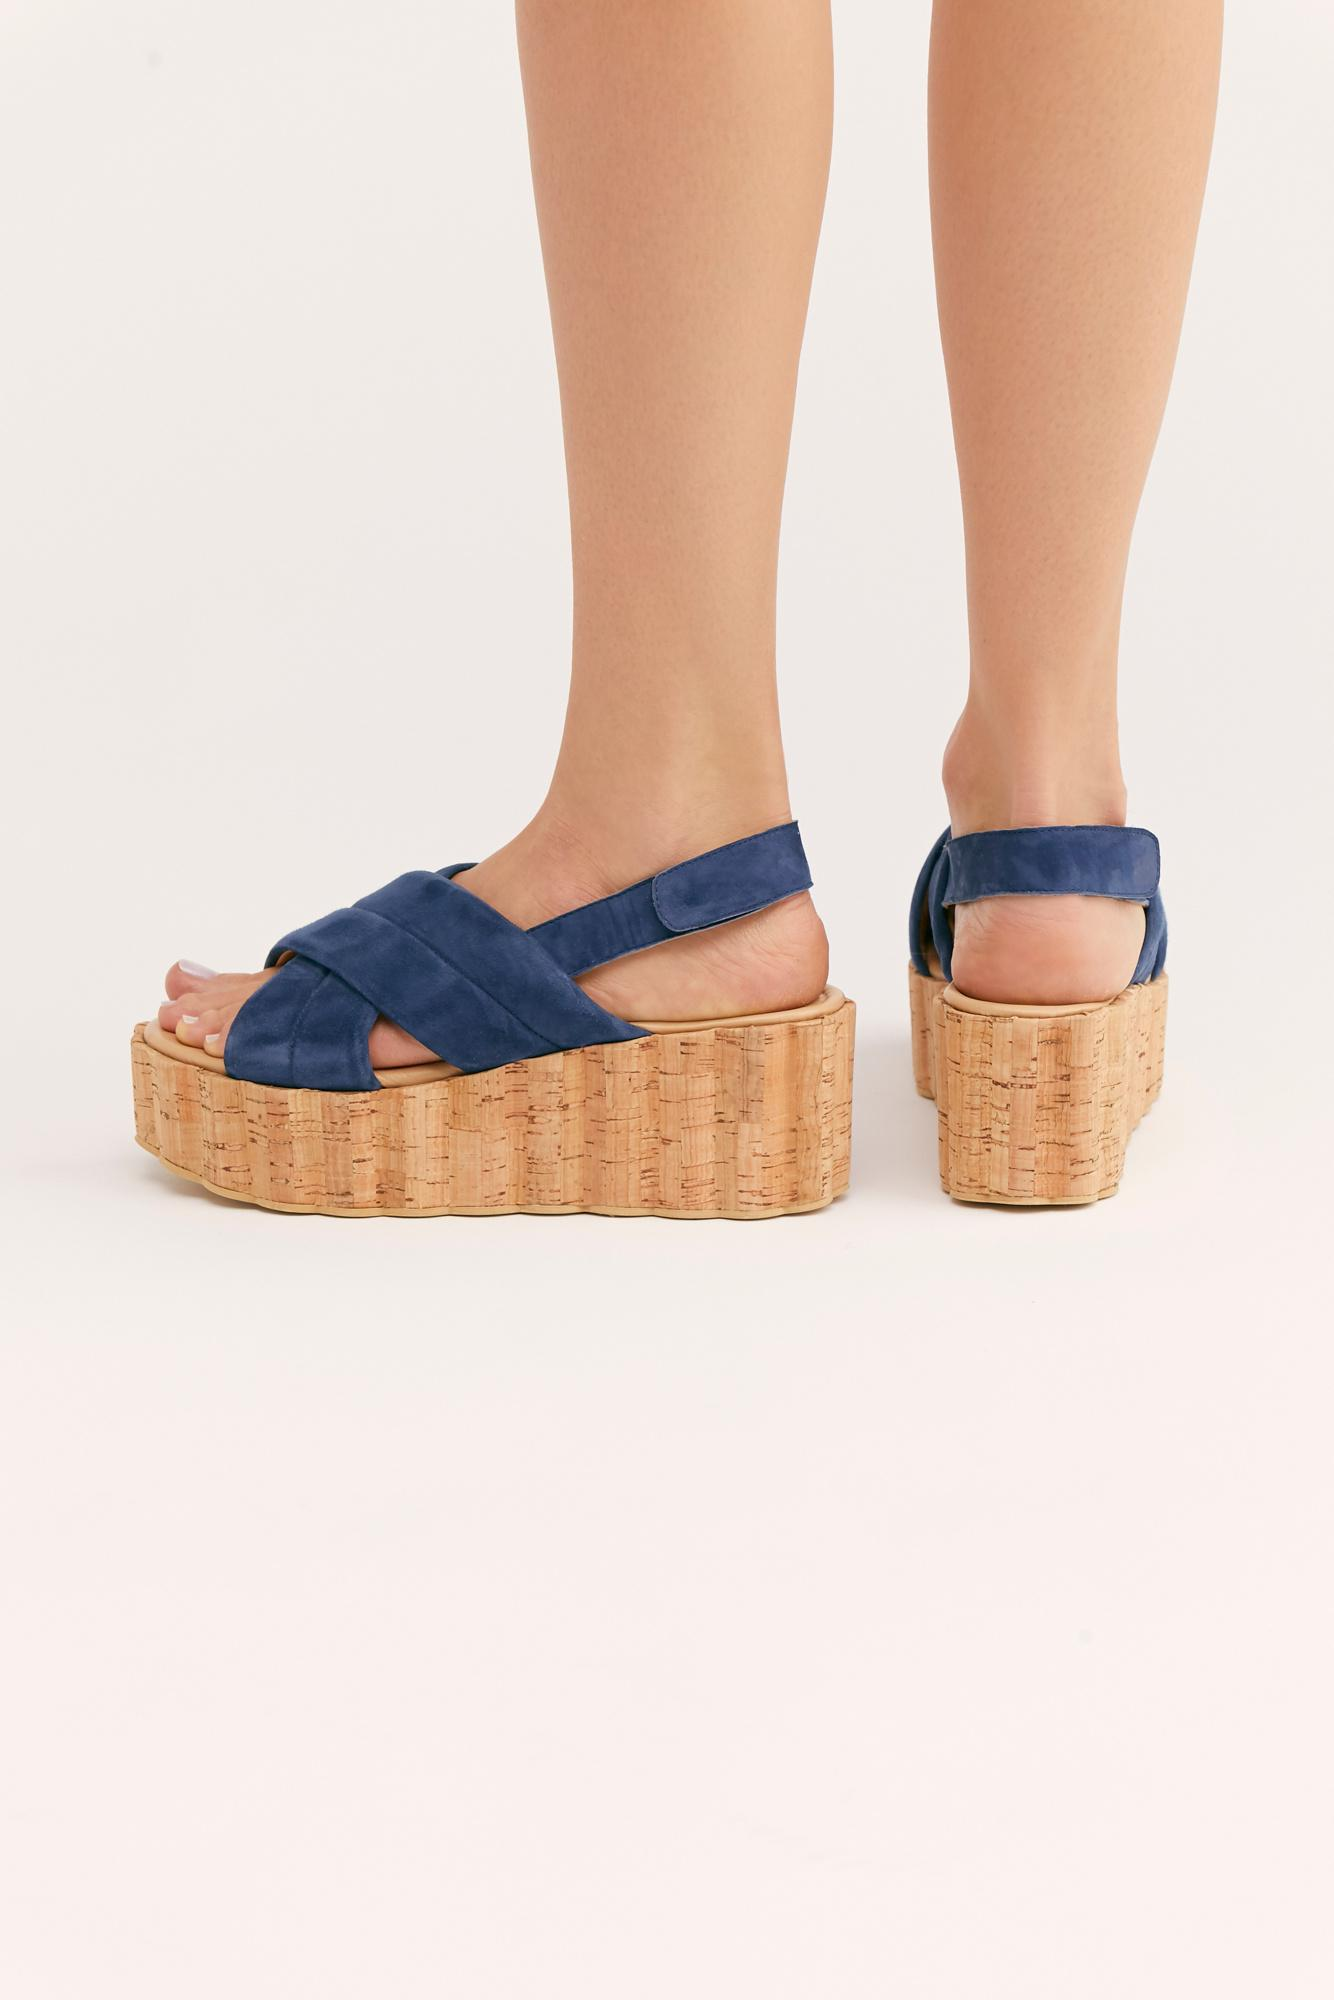 1285bec85c1 Free People - Blue Noelle Flatform Sandal By Fp Collection - Lyst. View  fullscreen